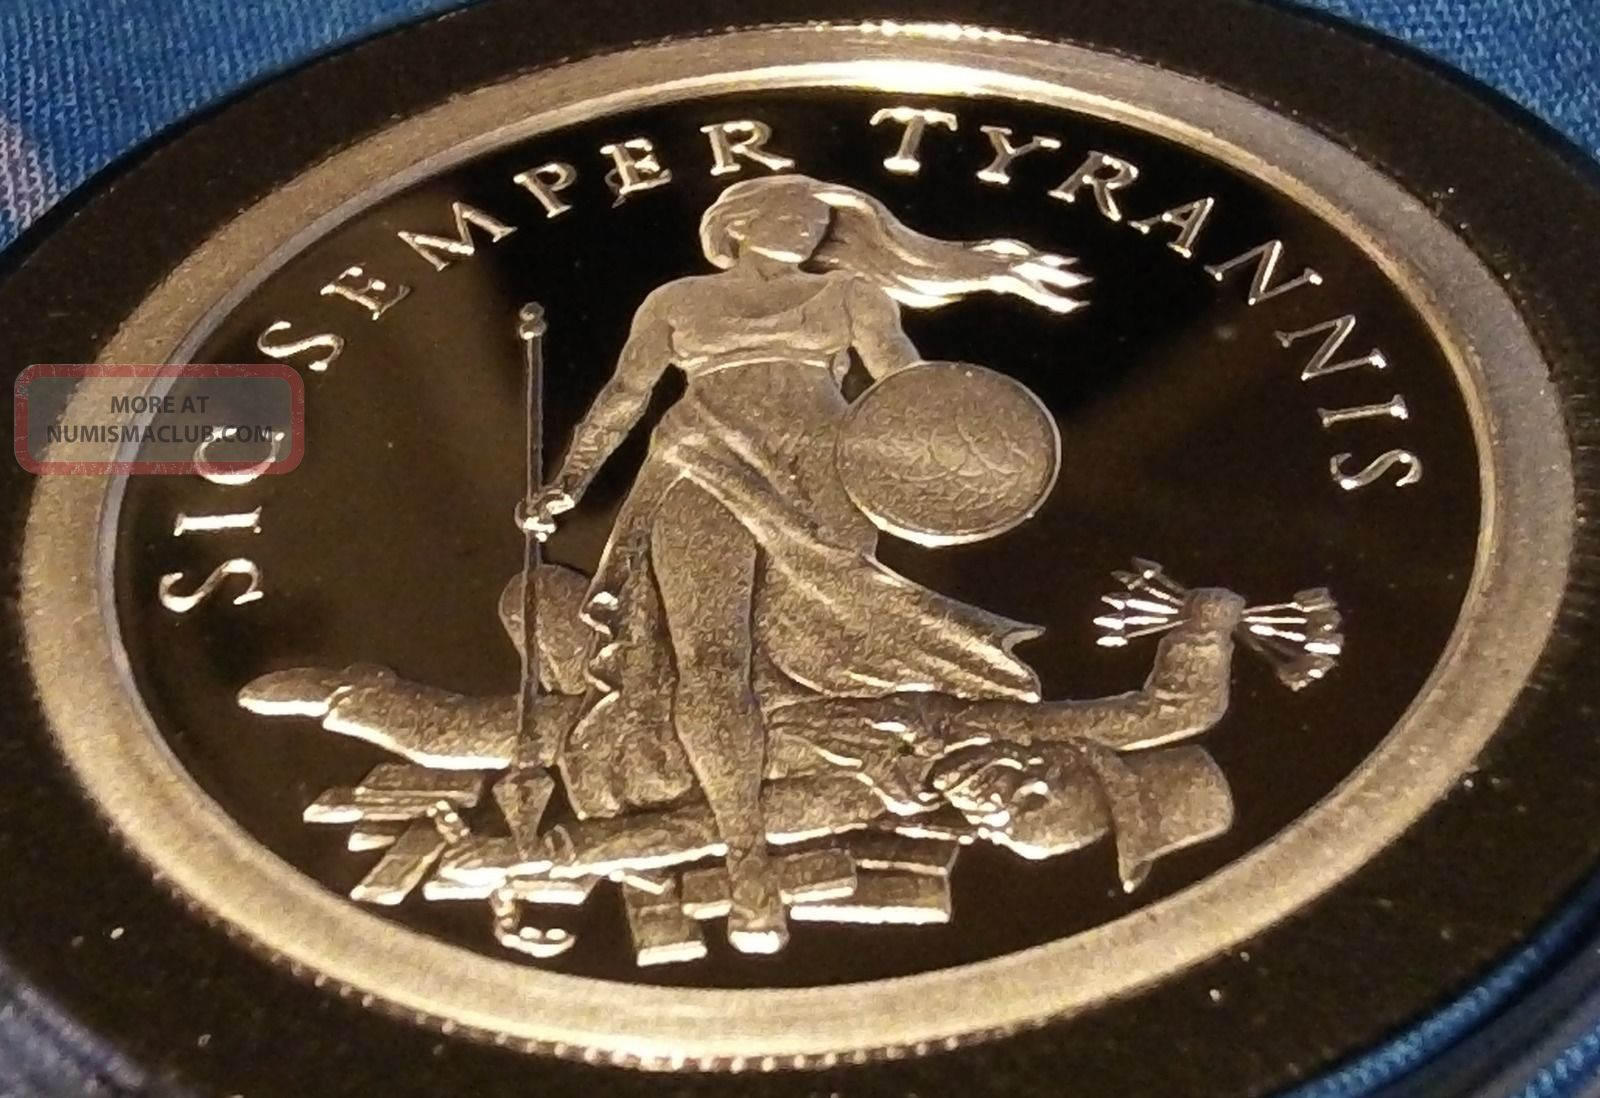 2013 Proof Sic Semper Tyrannis Medallion By Silver Bullet